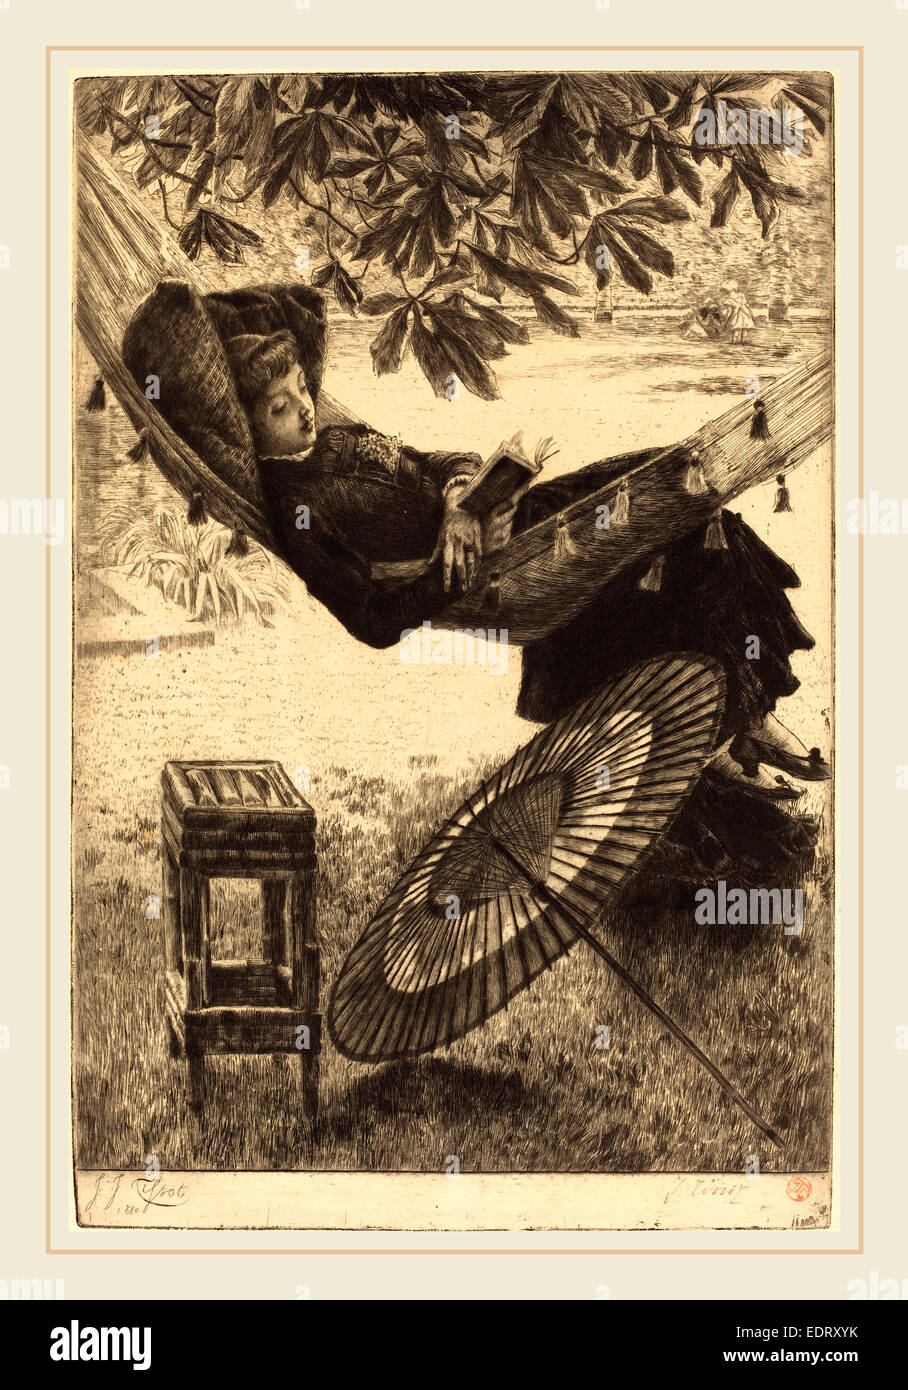 James Jacques Joseph Tissot (French, 1836-1902), The Hammock (Le hamac), 1880, etching and drypoint - Stock Image